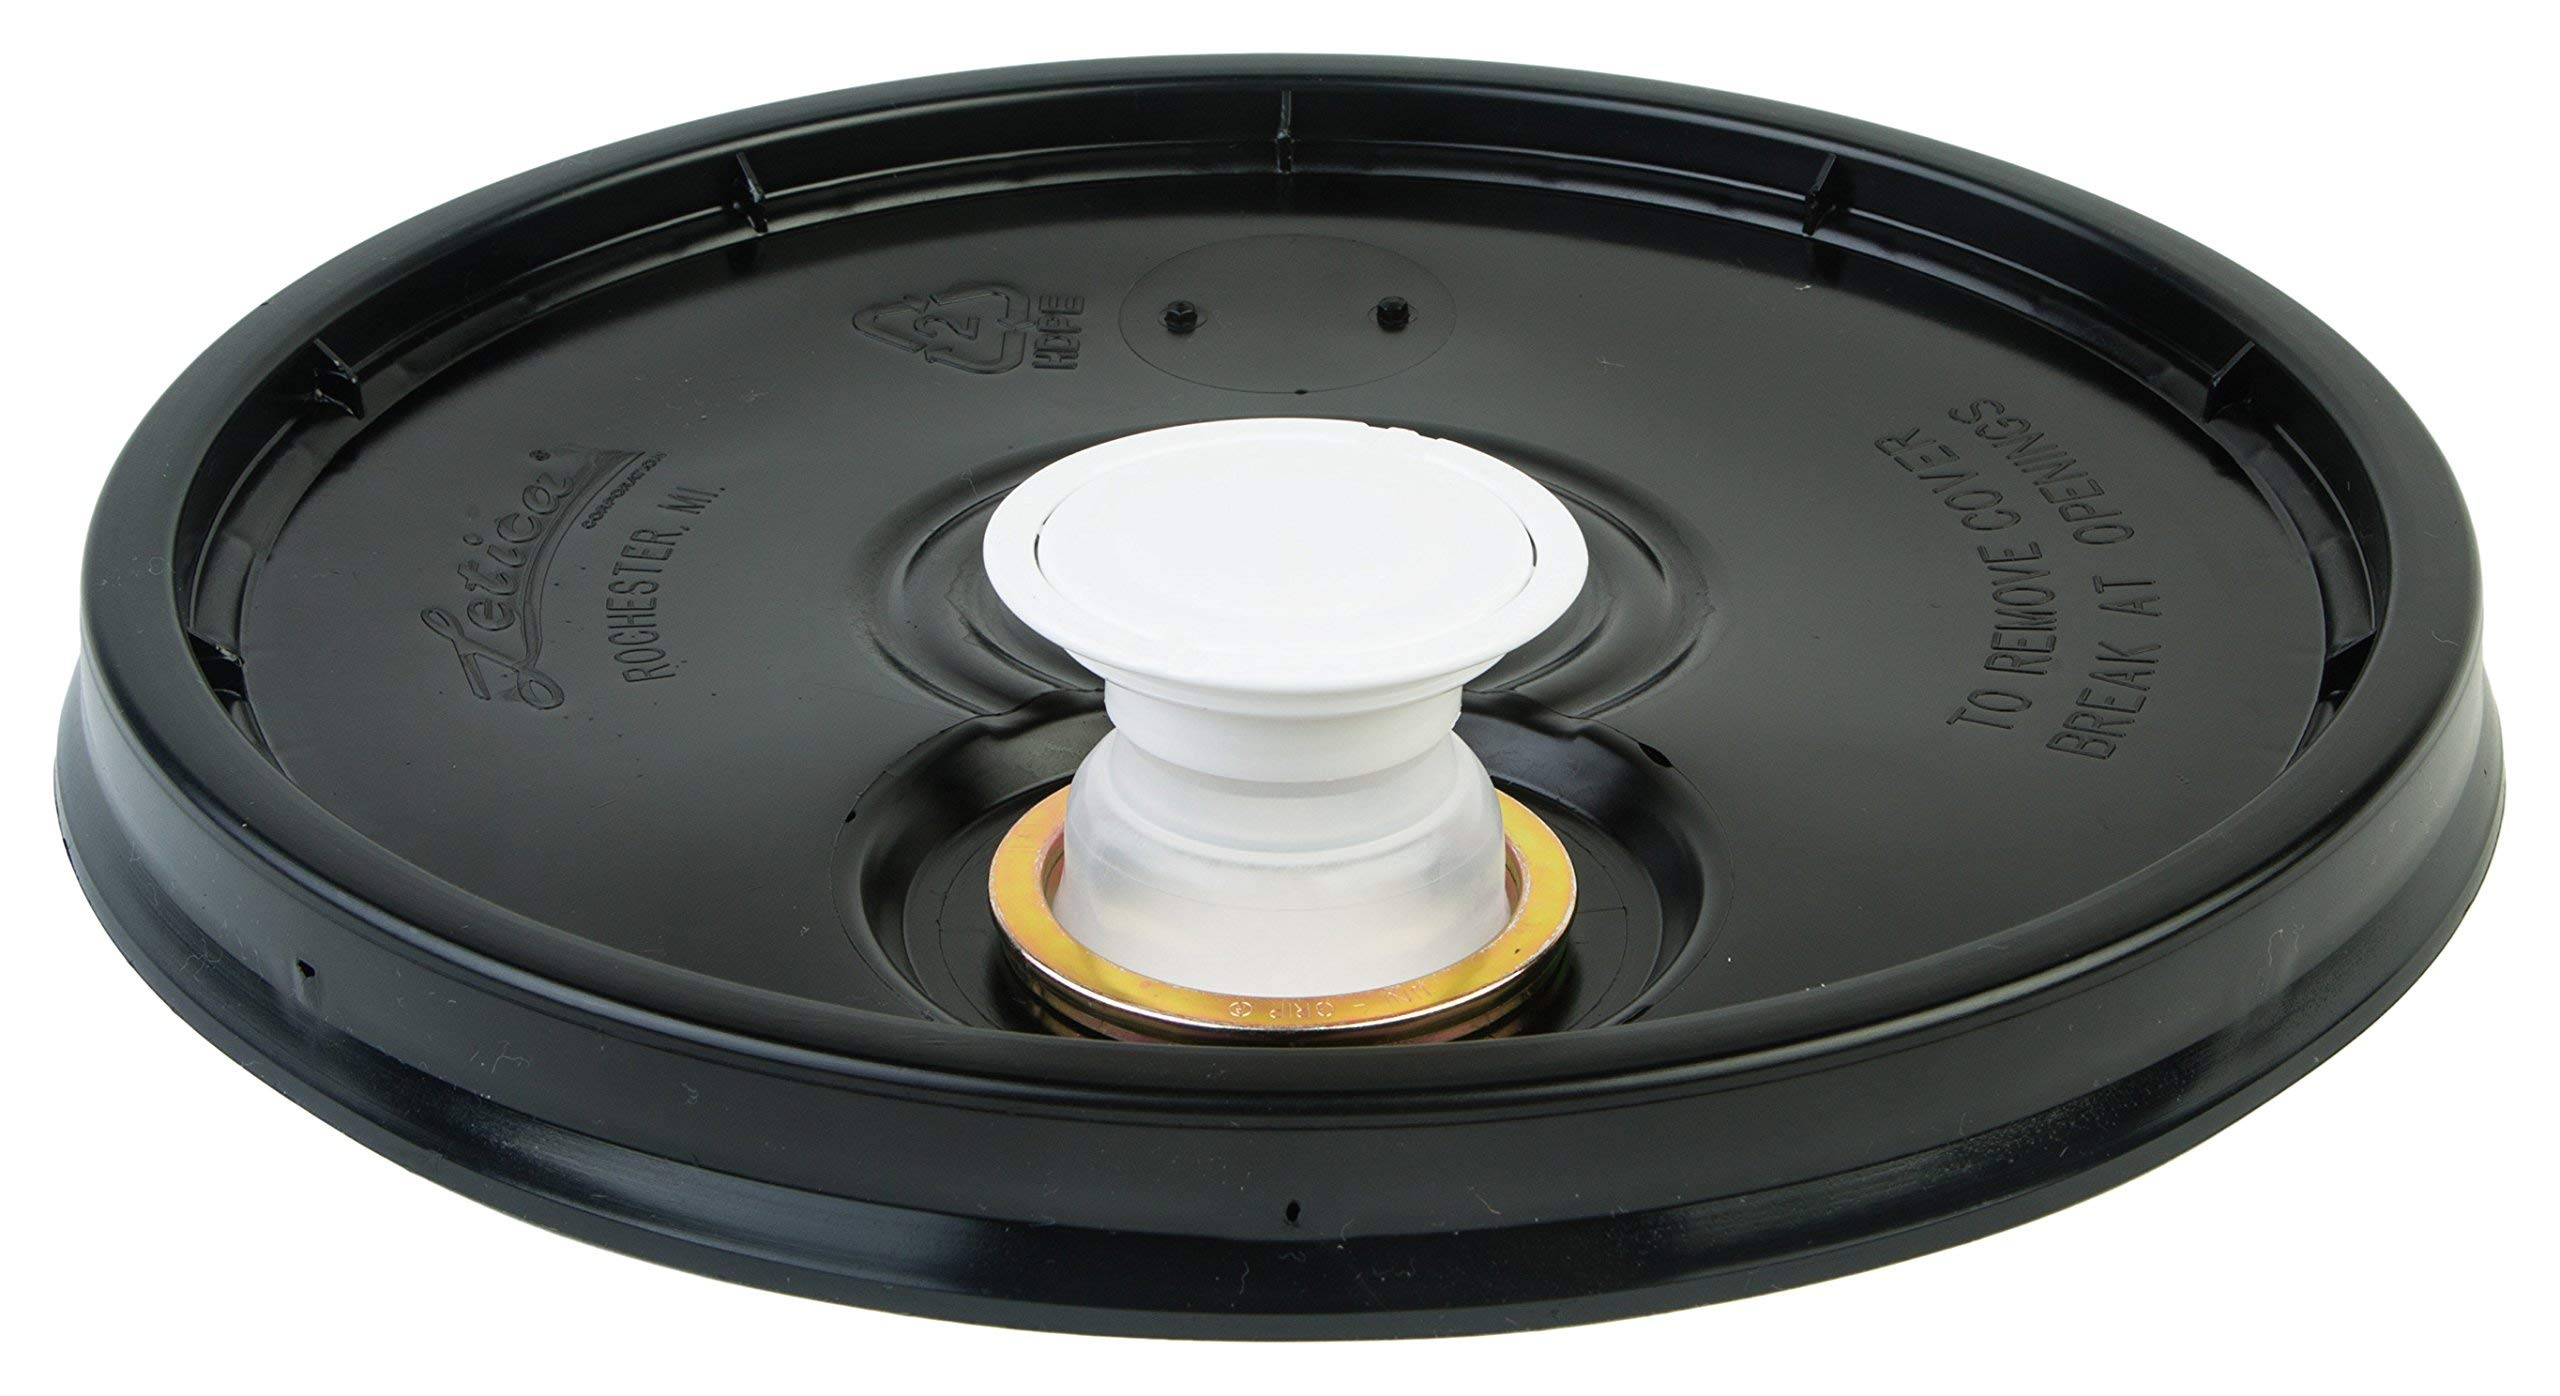 Hudson Exchange Lid with Spout and Gasket for 3.5, 5, 6, and 7 gal Buckets, HDPE, Black, 3 Pack